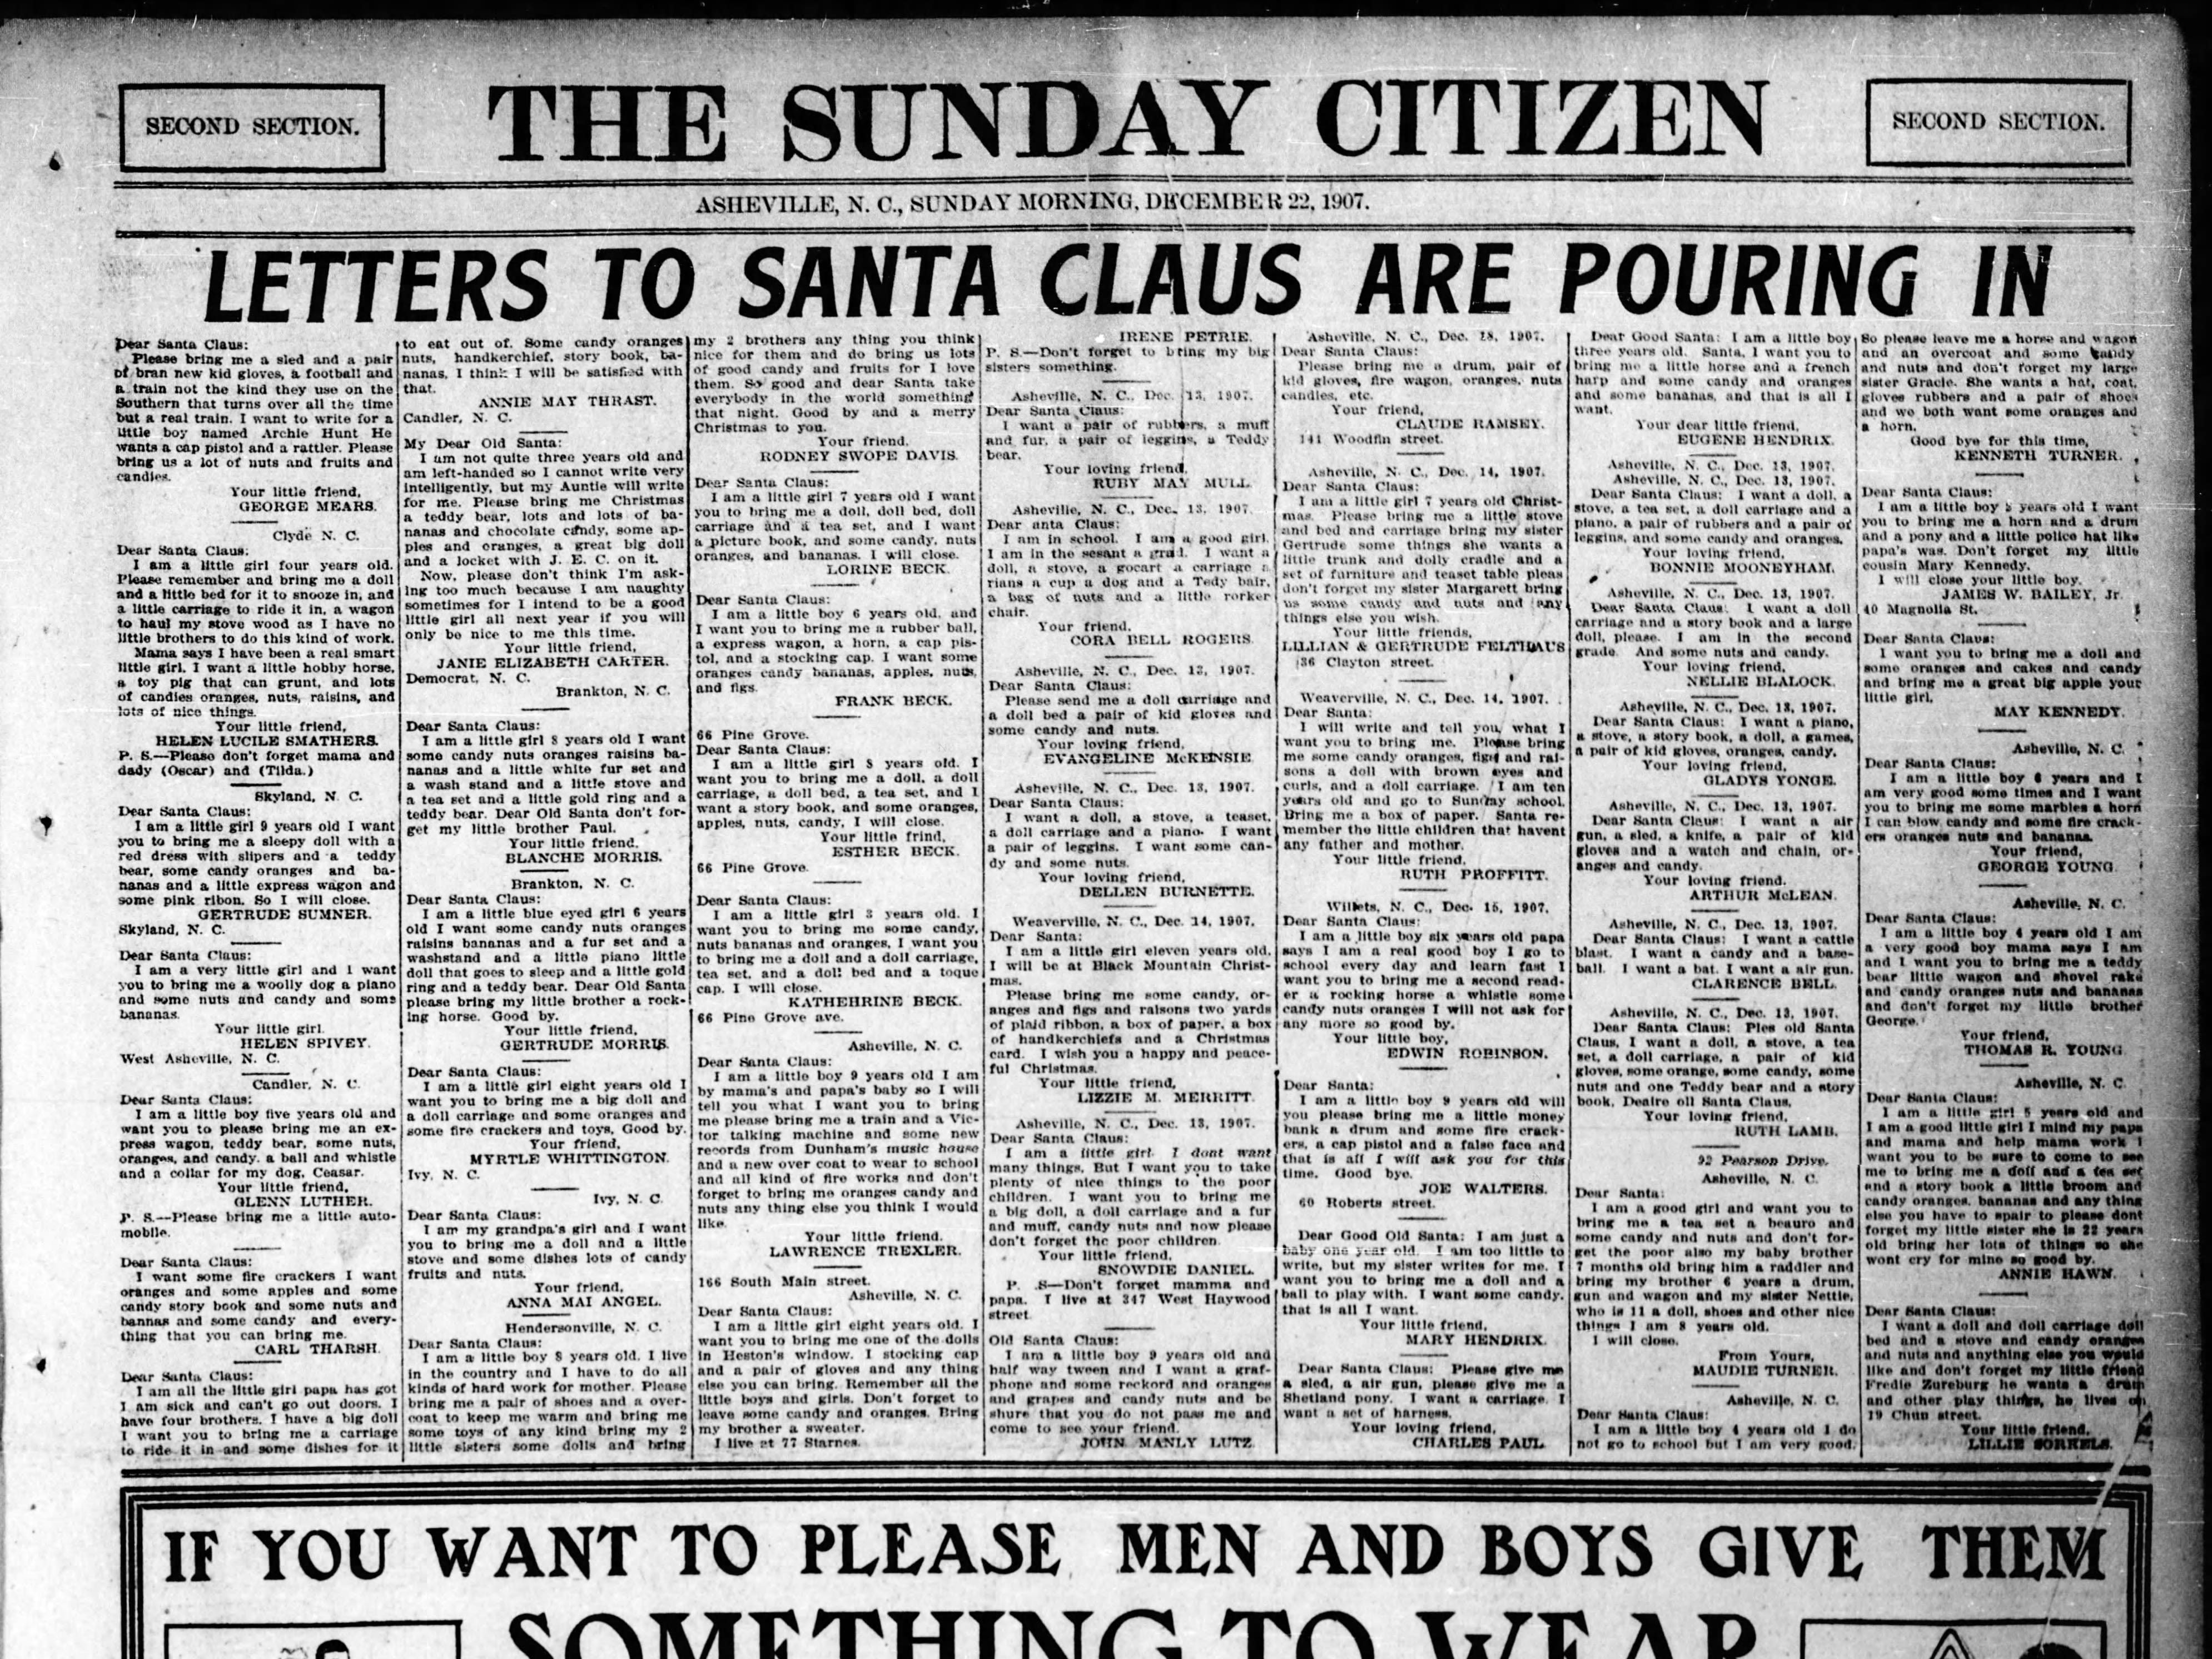 Santa Claus mail at the Asheville Citizen office in a December 1907 newspaper.